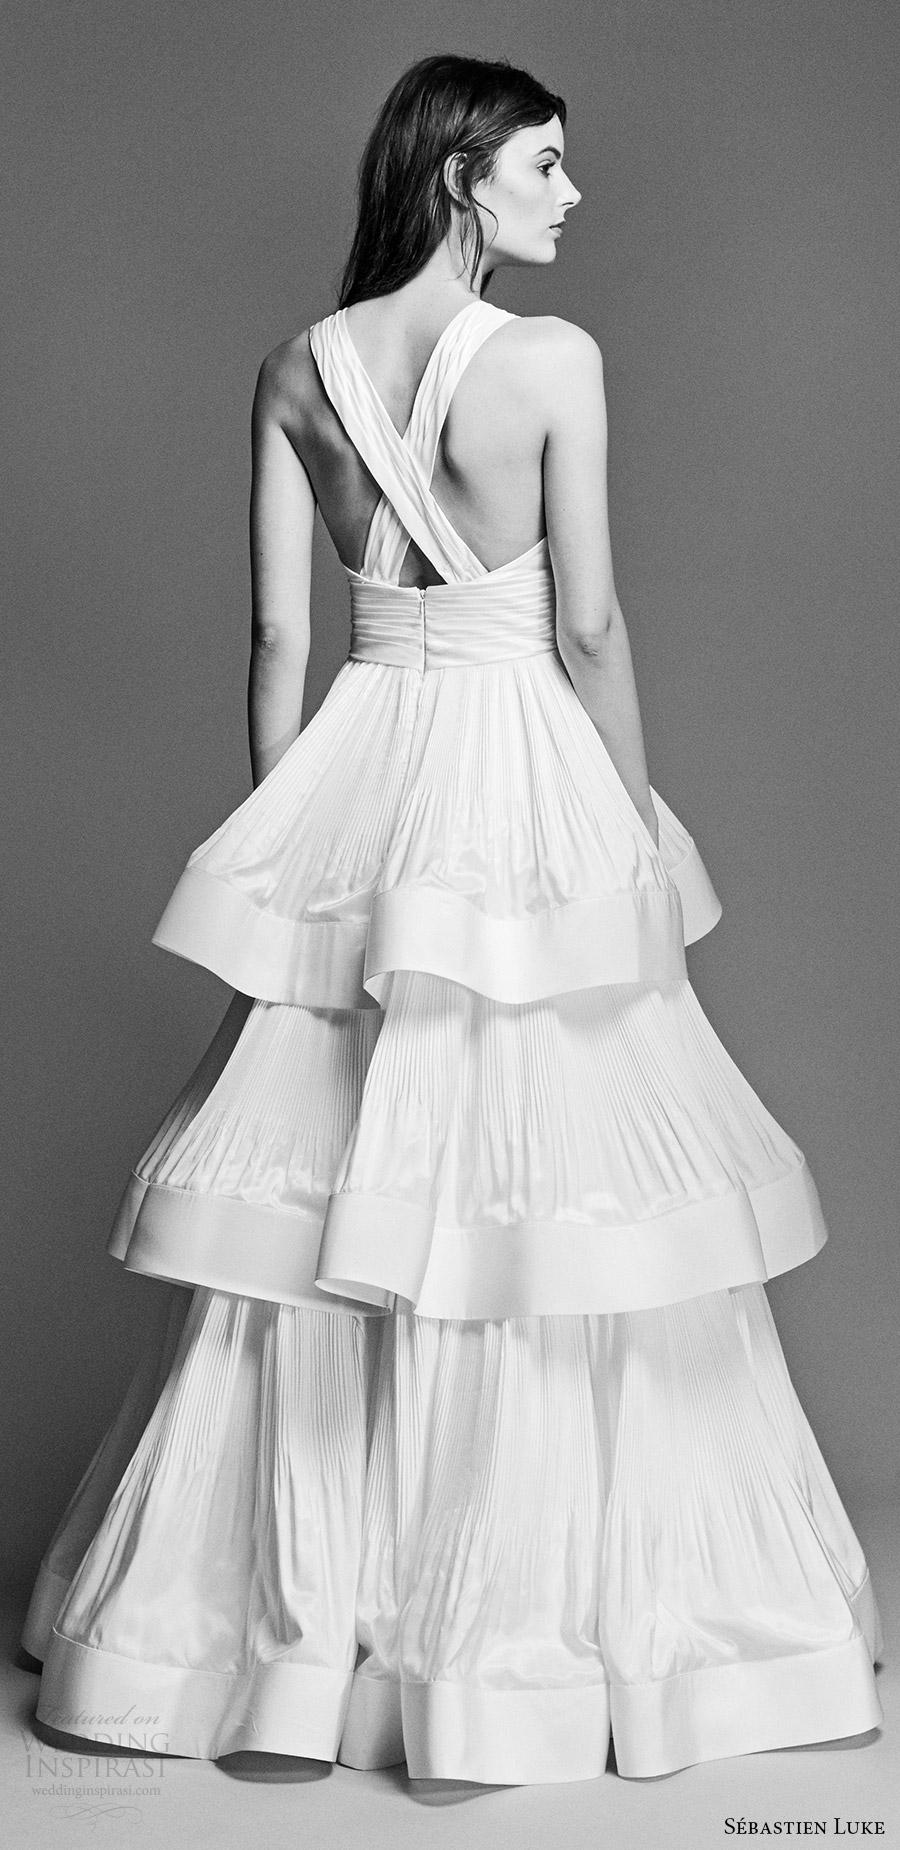 sebastien luke spring 2018 bridal sleeveless deep vneck column wedding dress tiered skirt (18b12) bv modern cross strap back